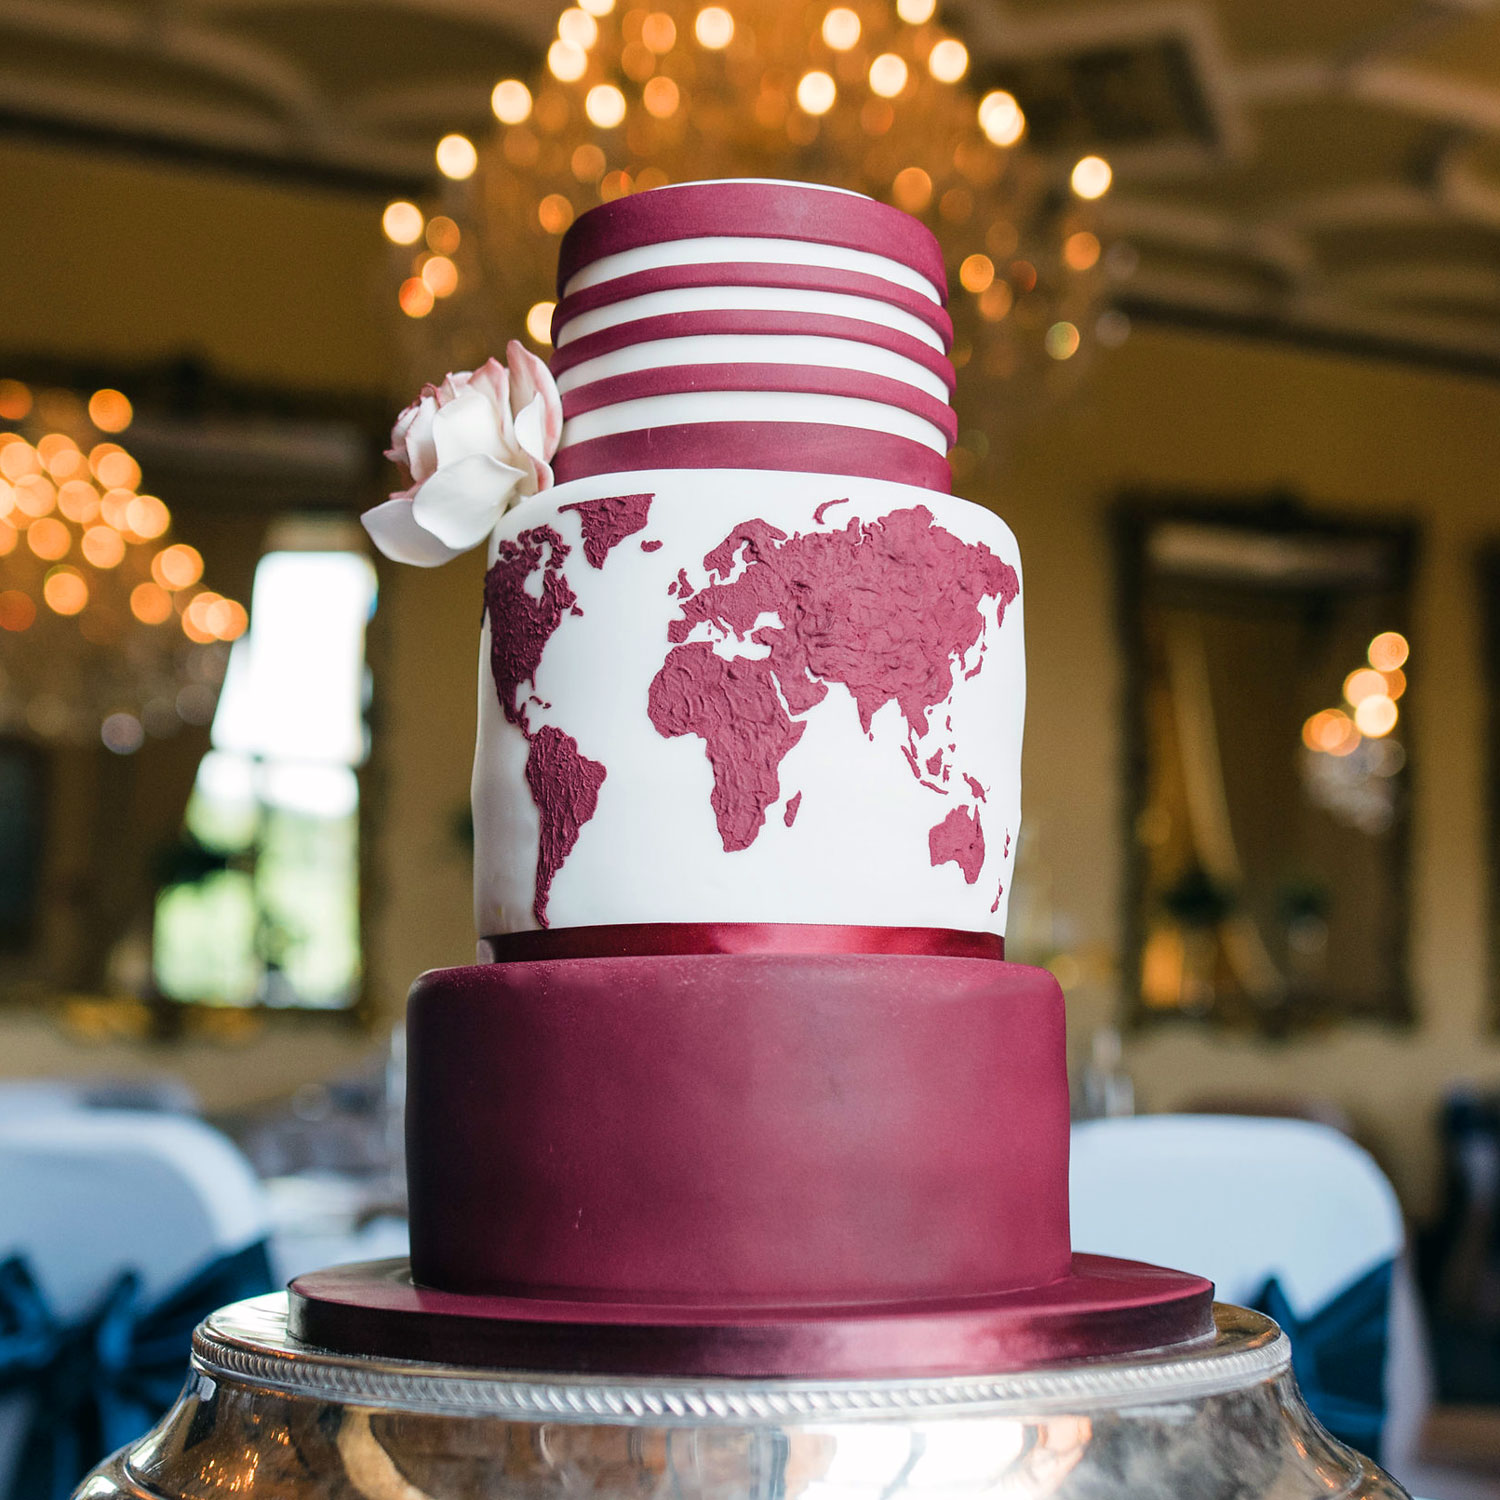 Map of Love Wedding Cake in Burgundy